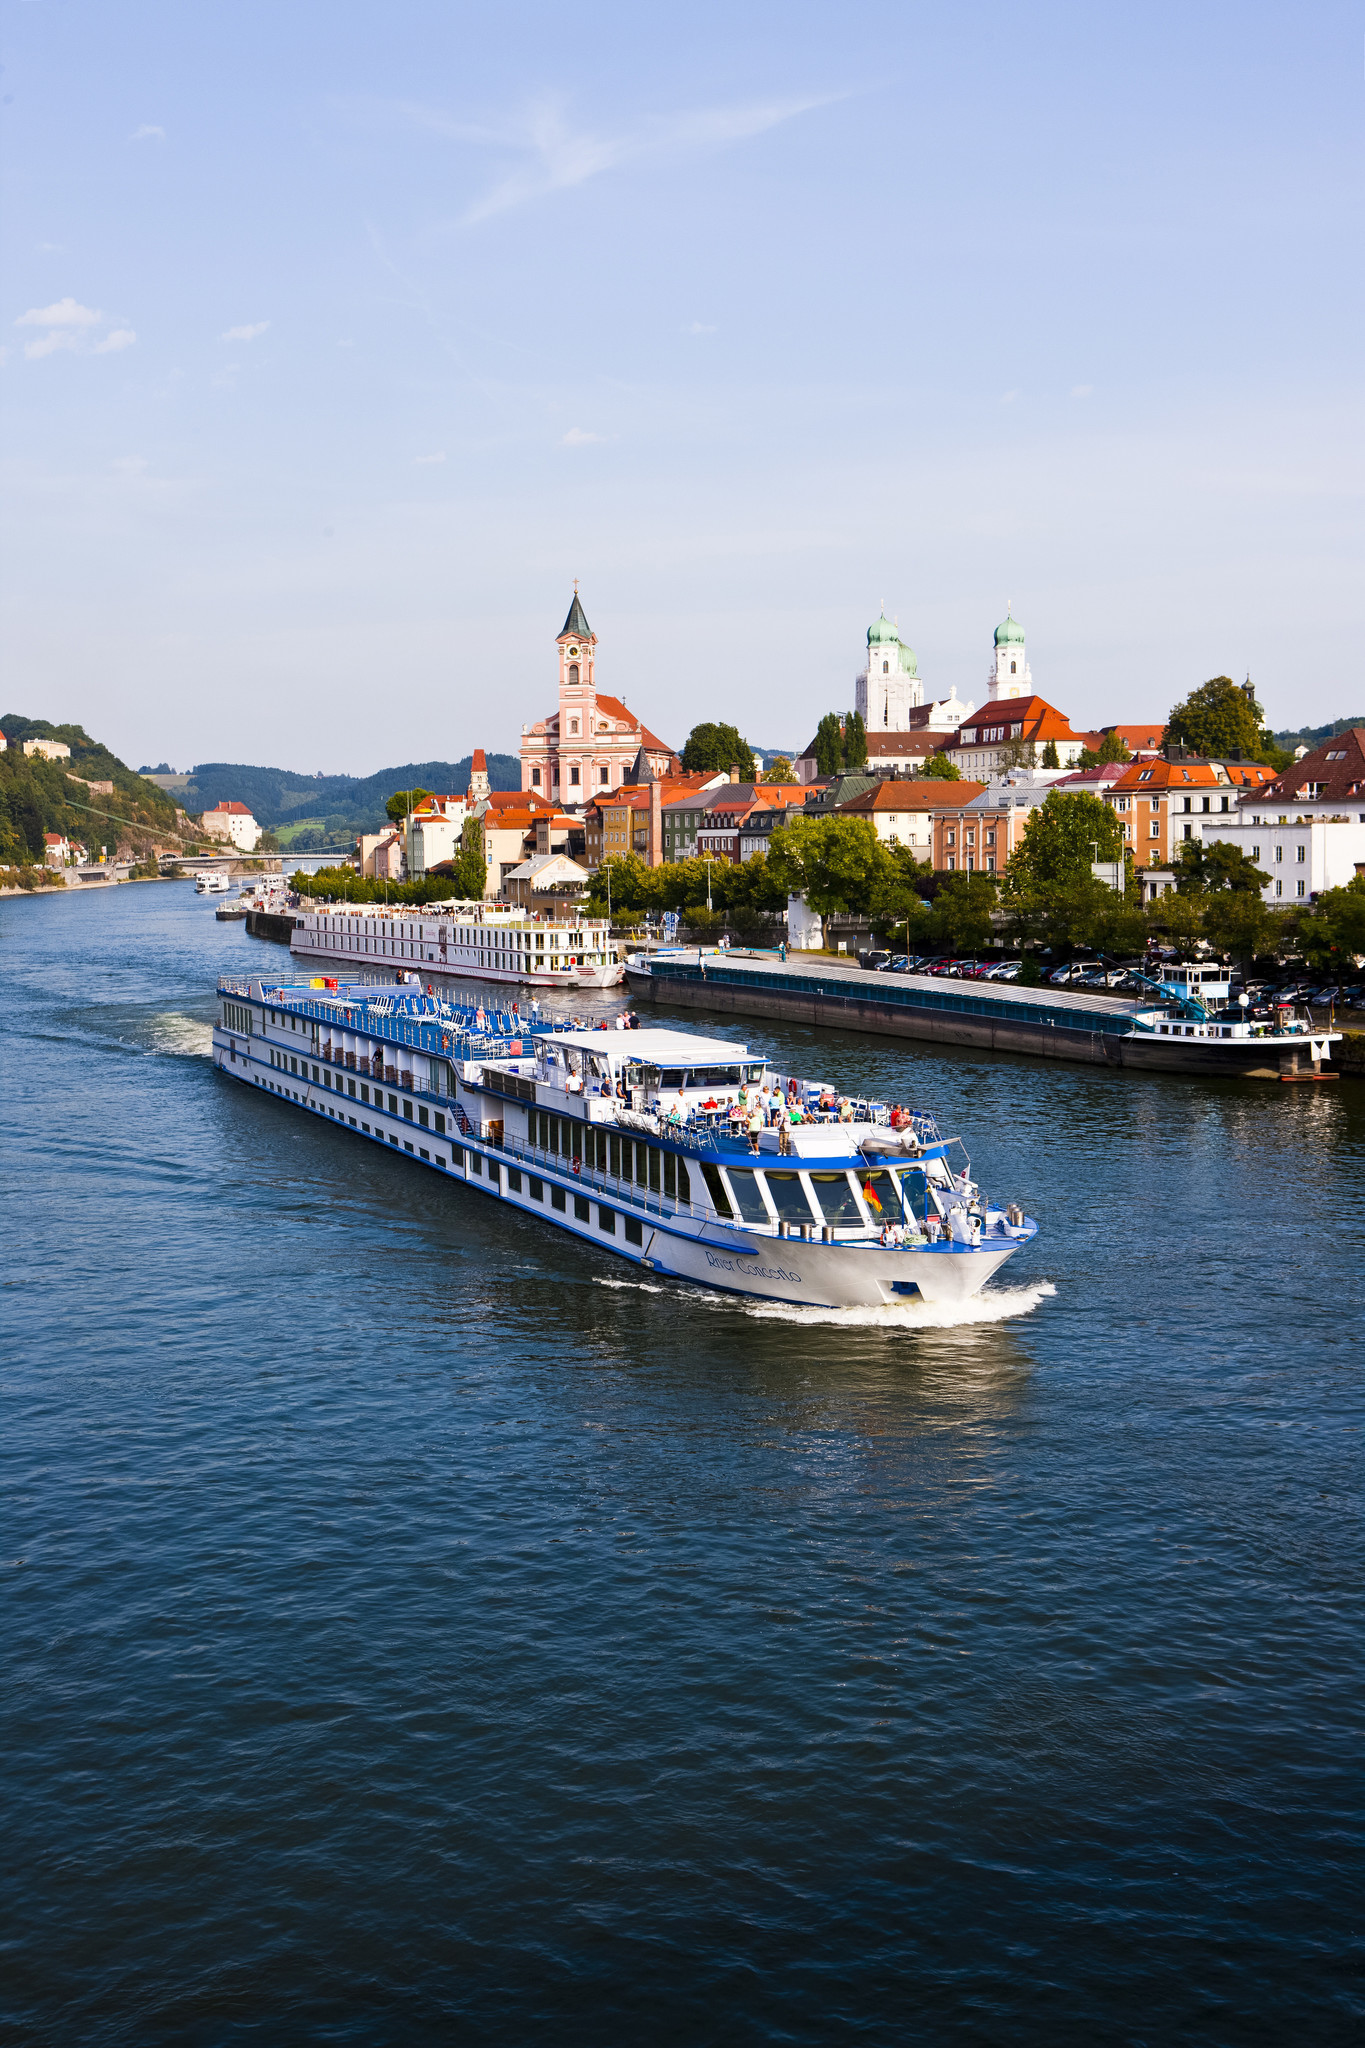 A Danube River cruise takes in the sights of Passau, Germany.